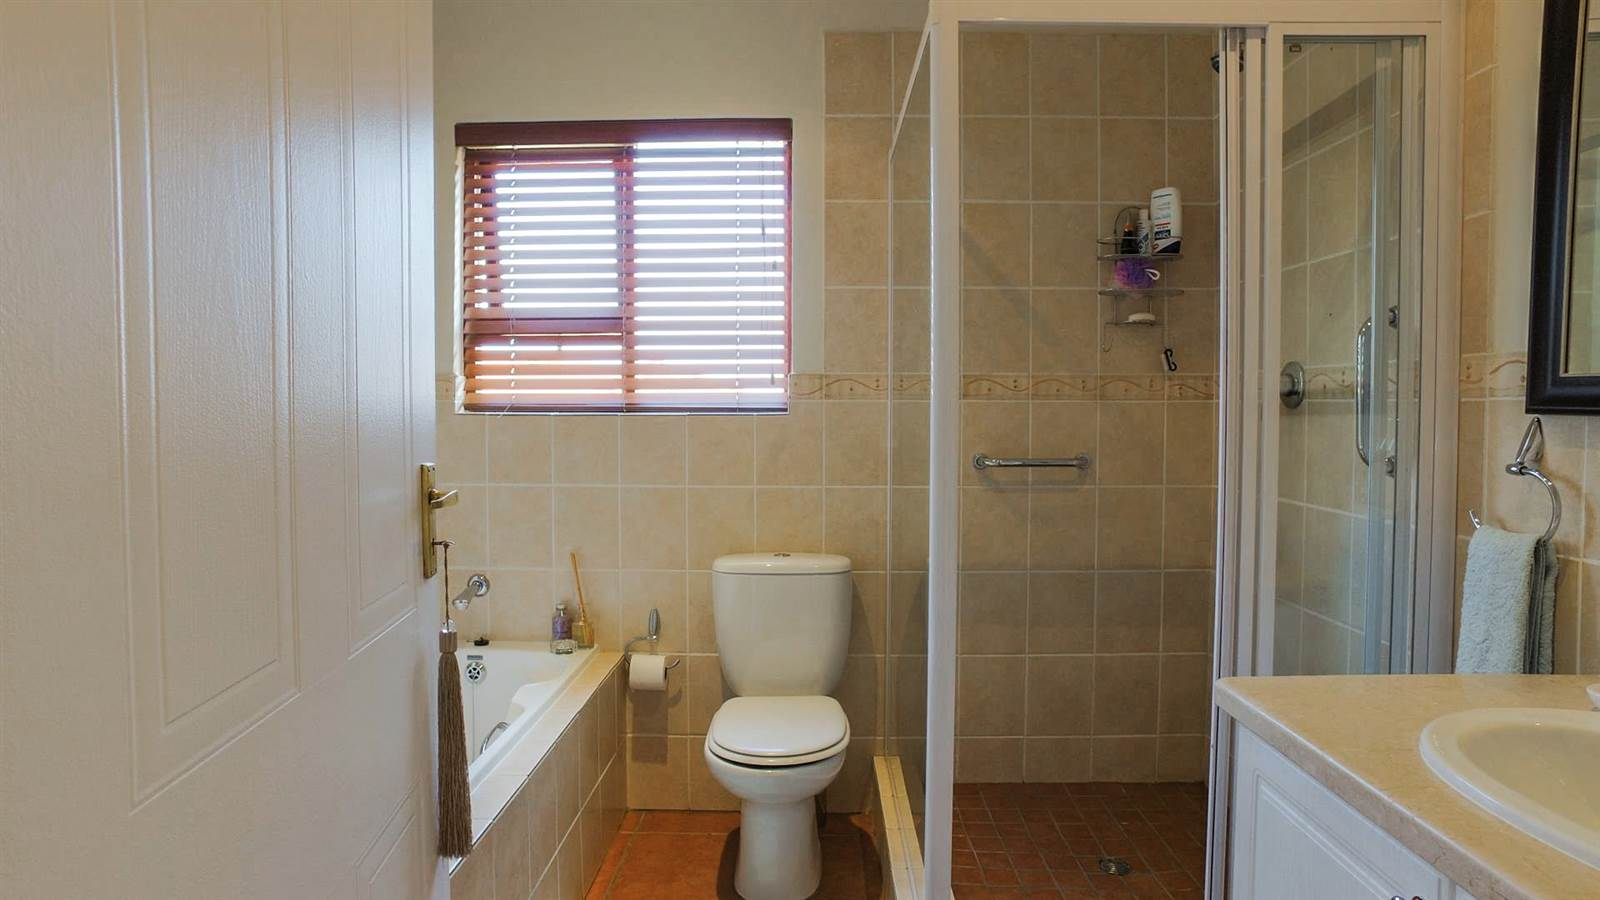 4 Bedroom Townhouse for sale in Mulbarton ENT0067436 : photo#20